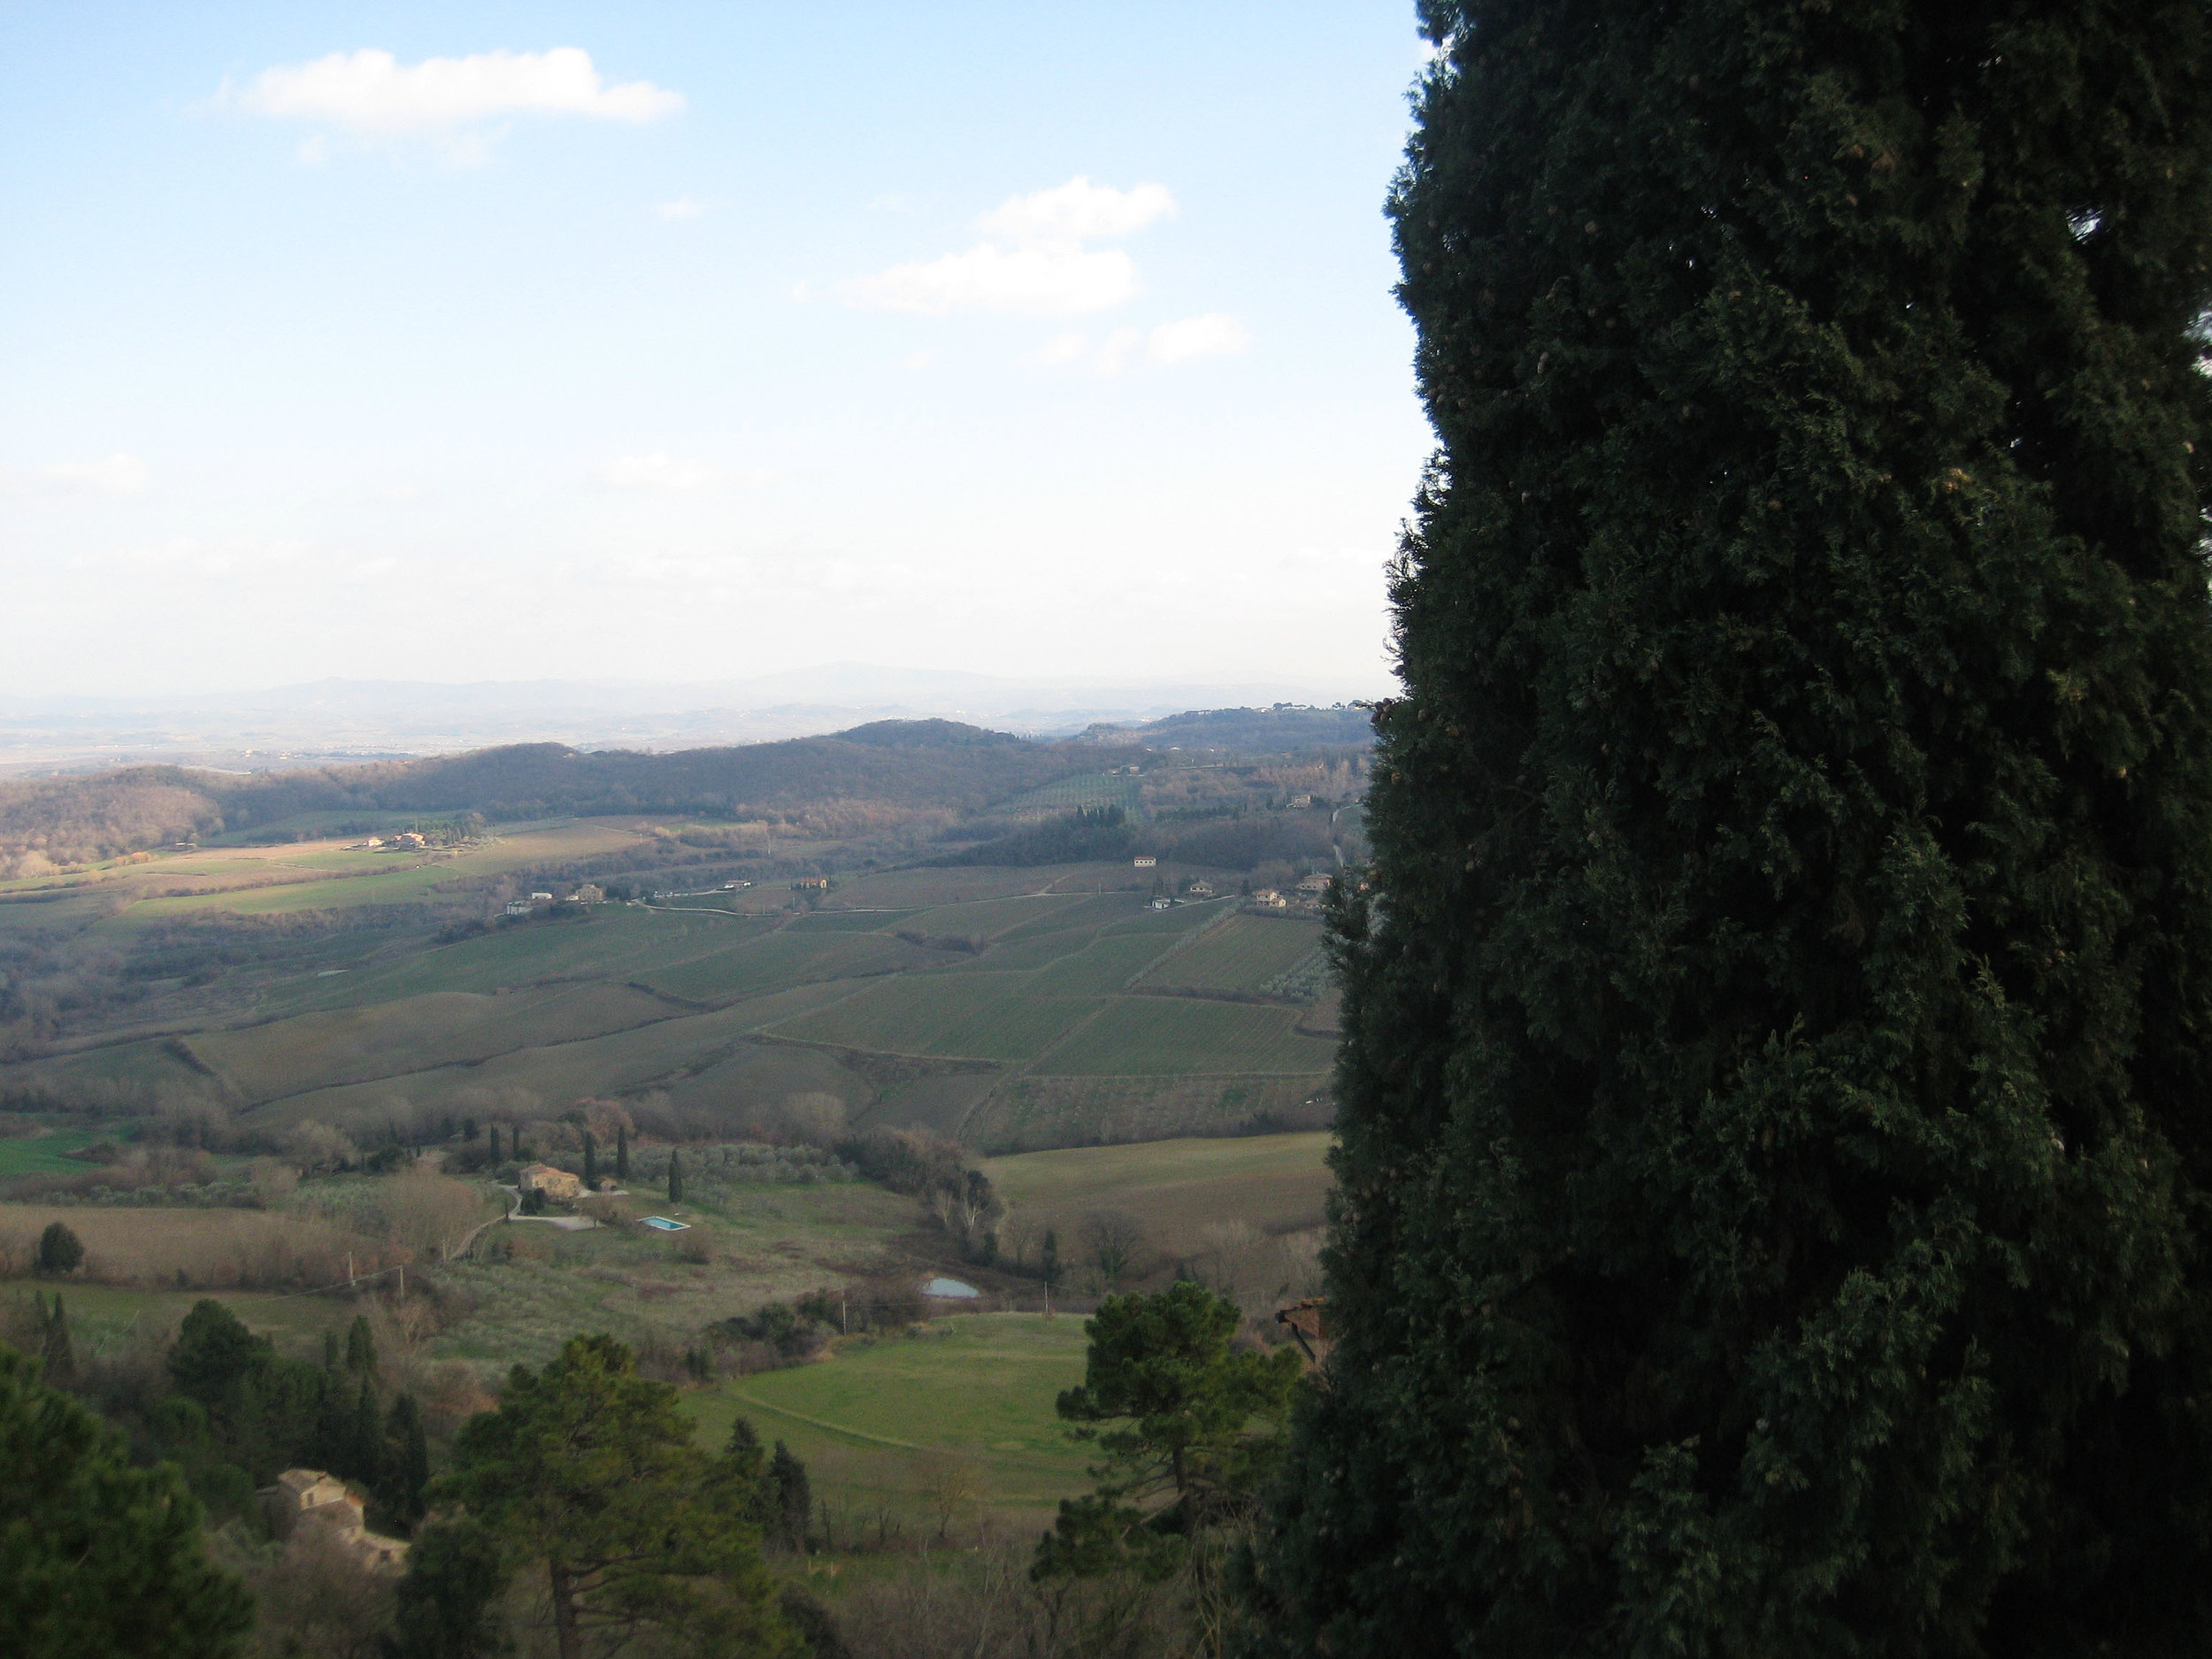 The view from Montepulciano